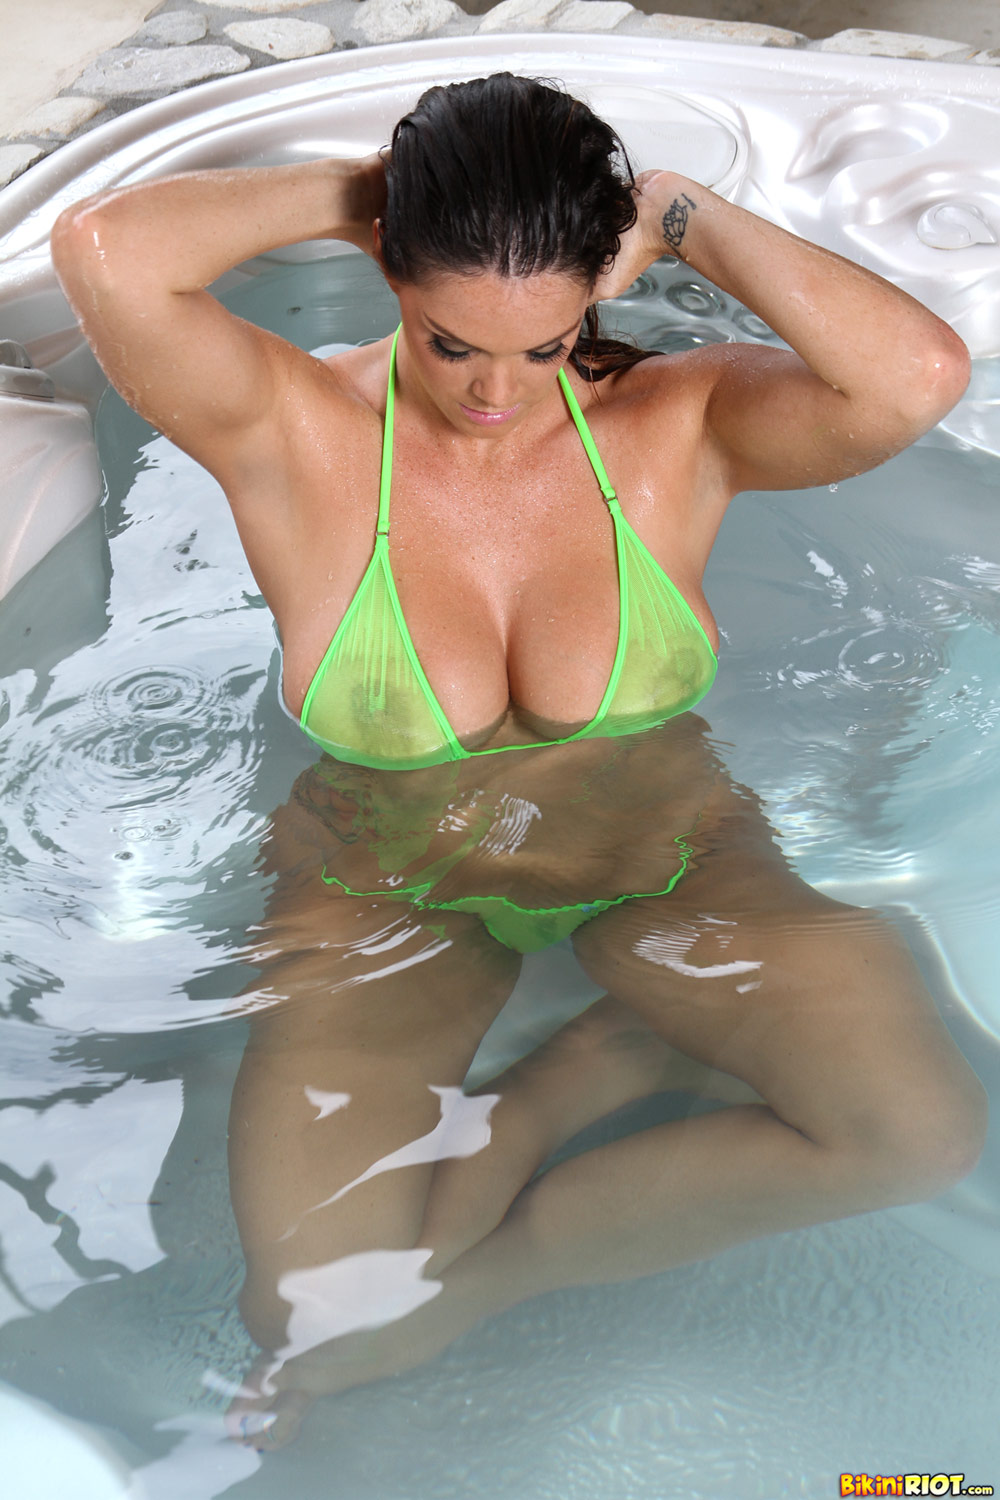 Alison Tyler - Green Sheer G-String 4356-6535